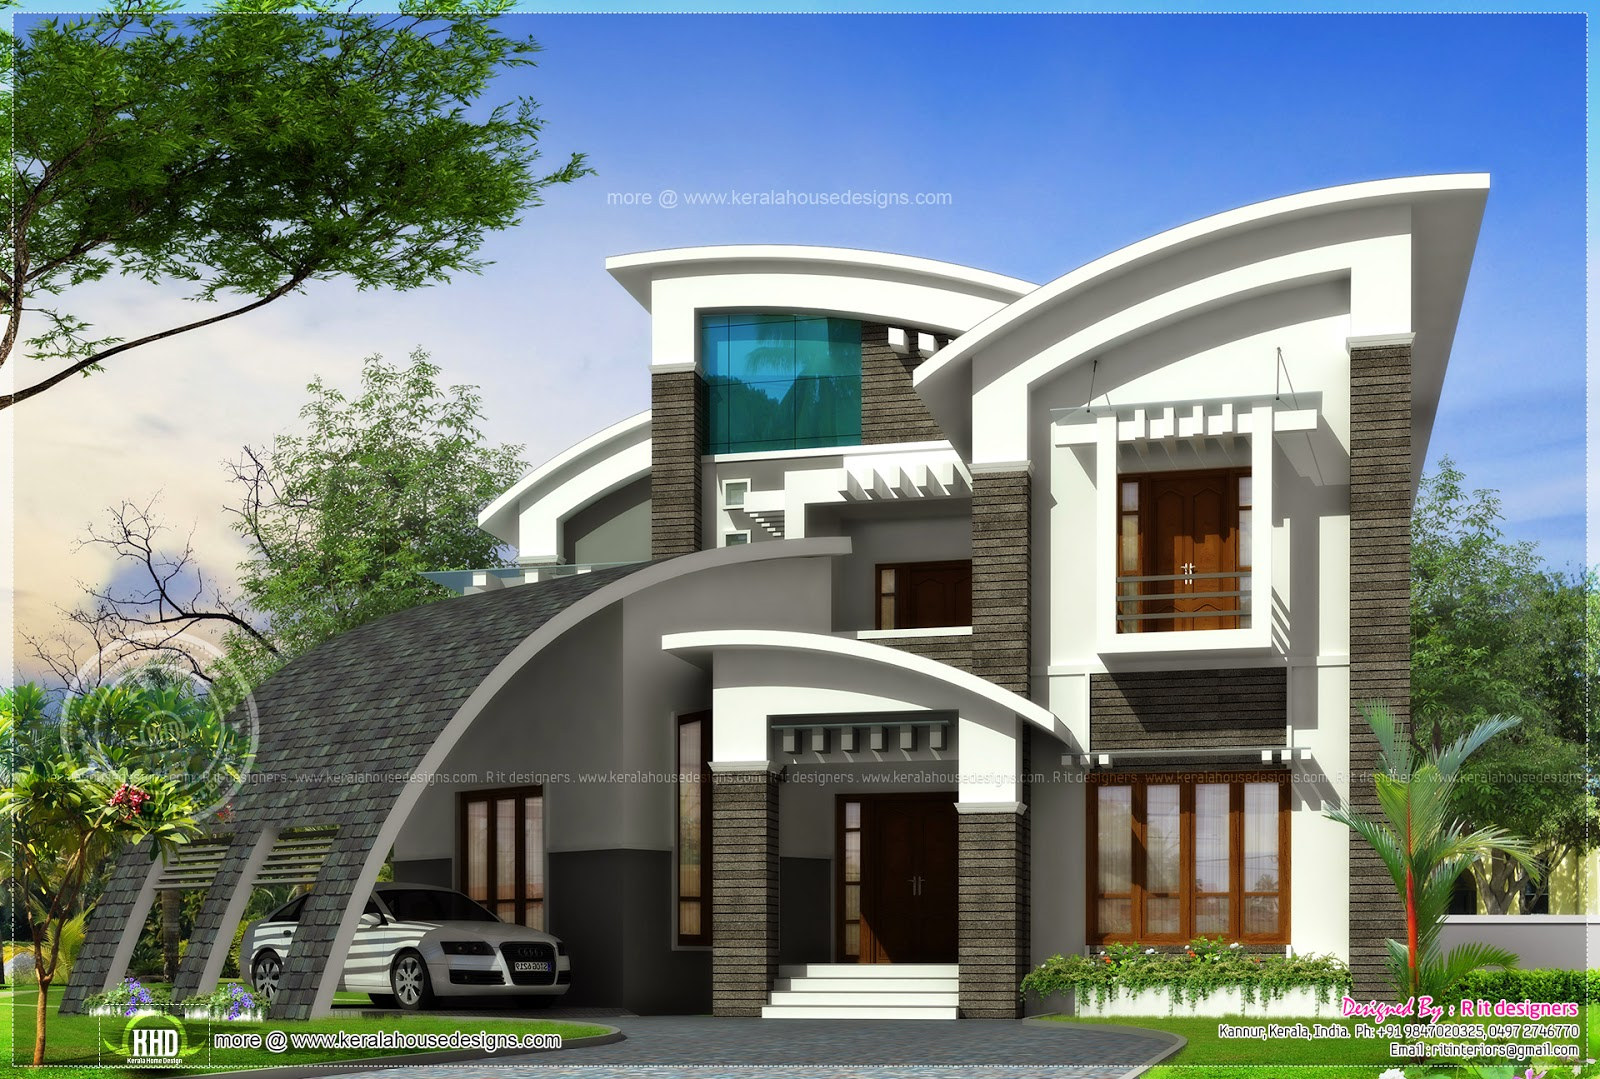 Super luxury ultra modern house design kerala home for Luxury house designs and floor plans